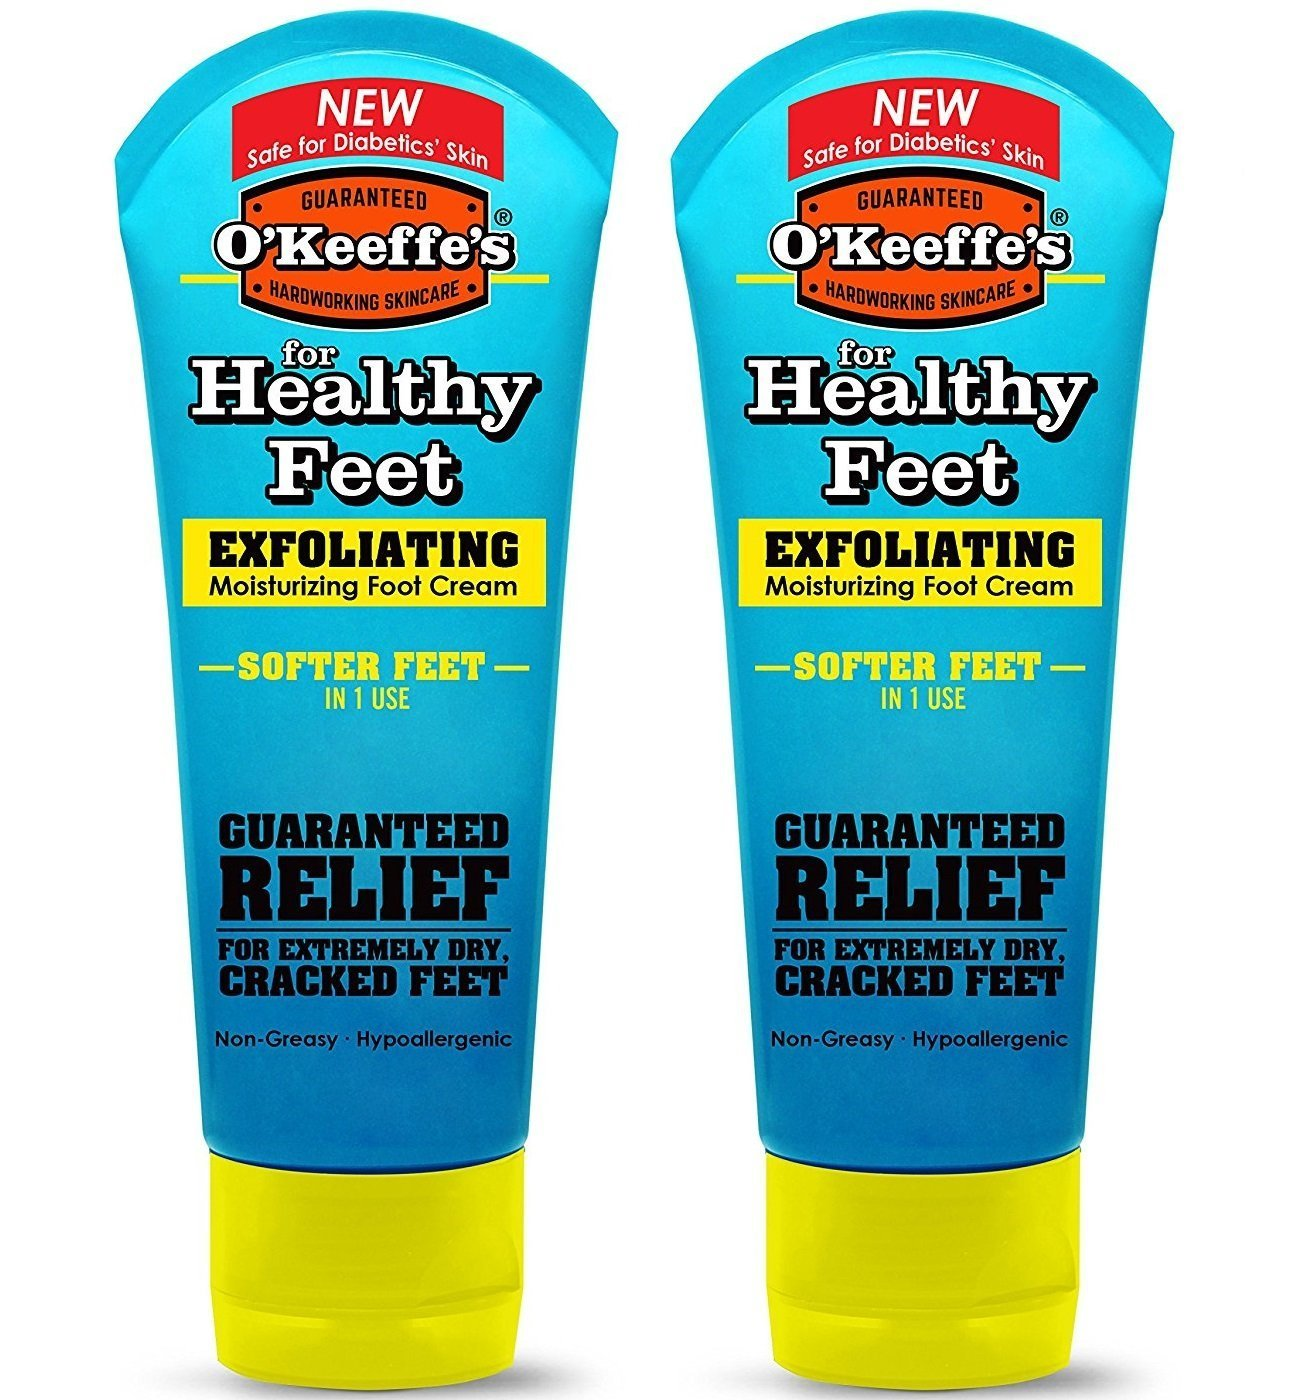 O'Keeffe's For Healthy Feet Exfoliating Moisturizing Foot Cream - 3 oz, Pack of 2 GORILLA GLUE COMPANY